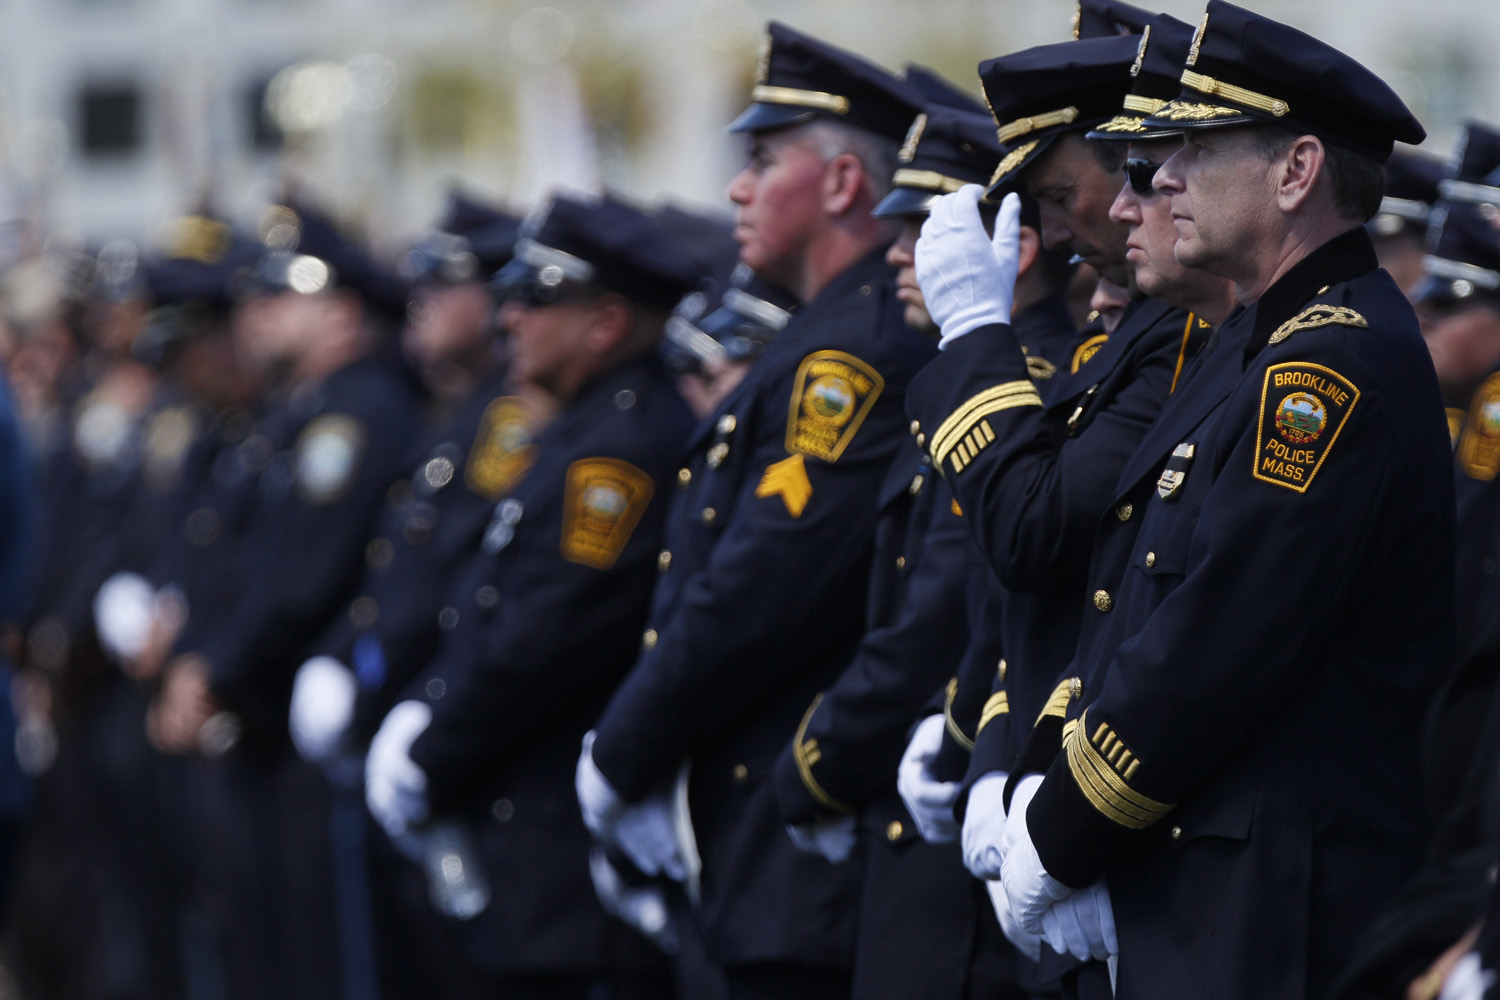 April 23, 2013. Law enforcement officers during a memorial service for Massachusetts Institute of Technology police officer Sean Collier, at Briggs Field on the university's campus in Cambridge, Mass.